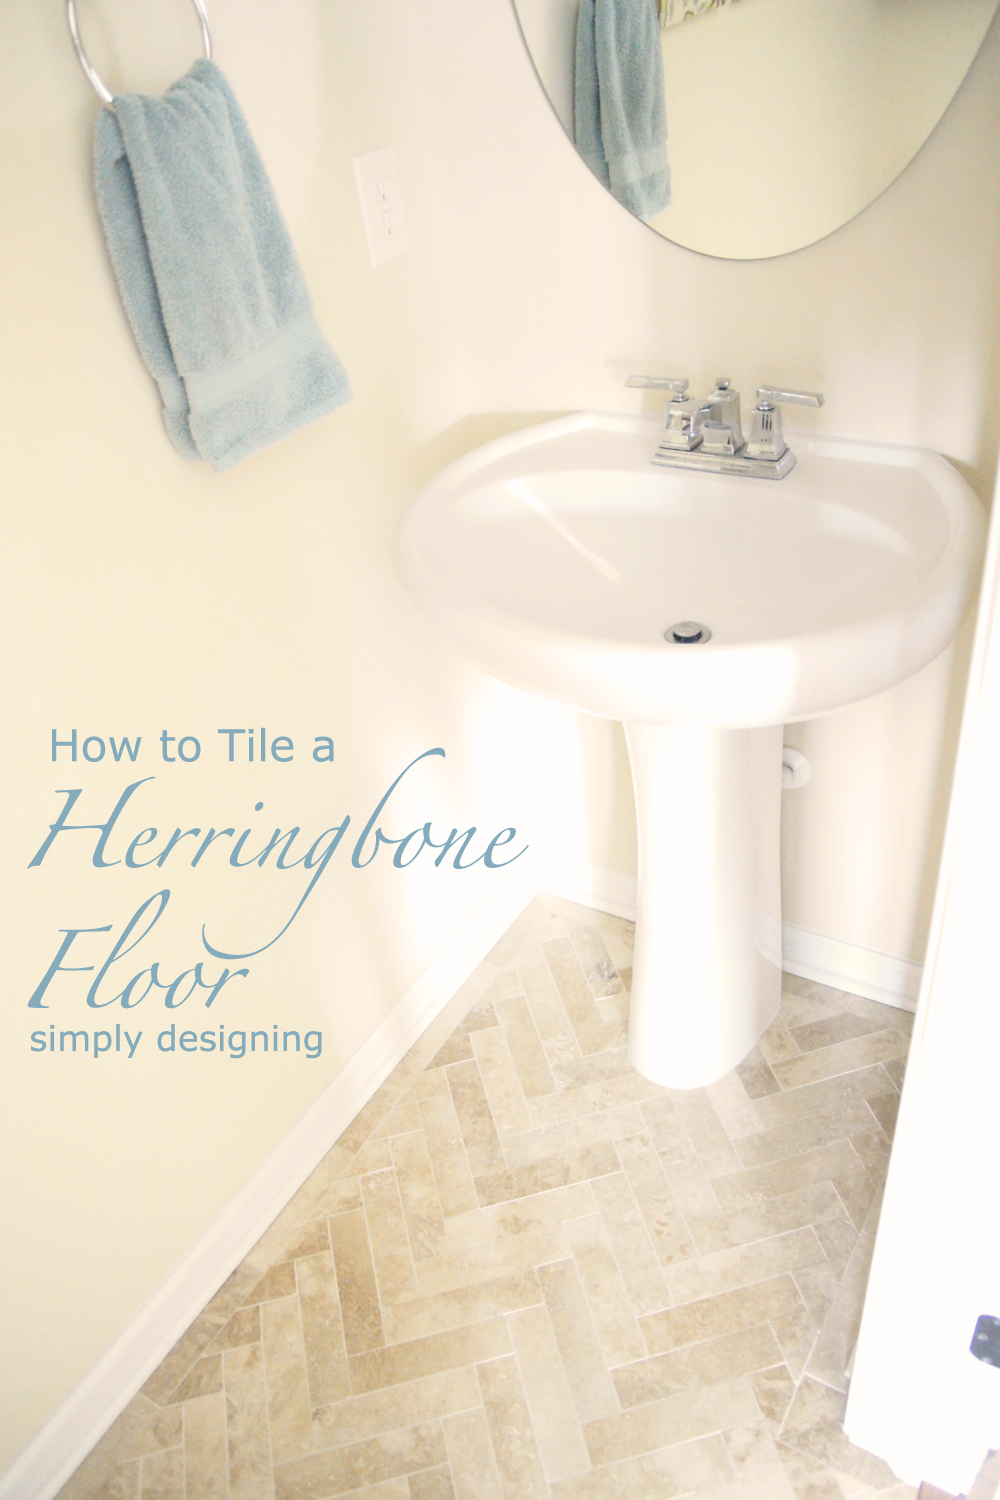 Herringbone tile floors diy tile thetileshop thetileshop dailygadgetfo Image collections